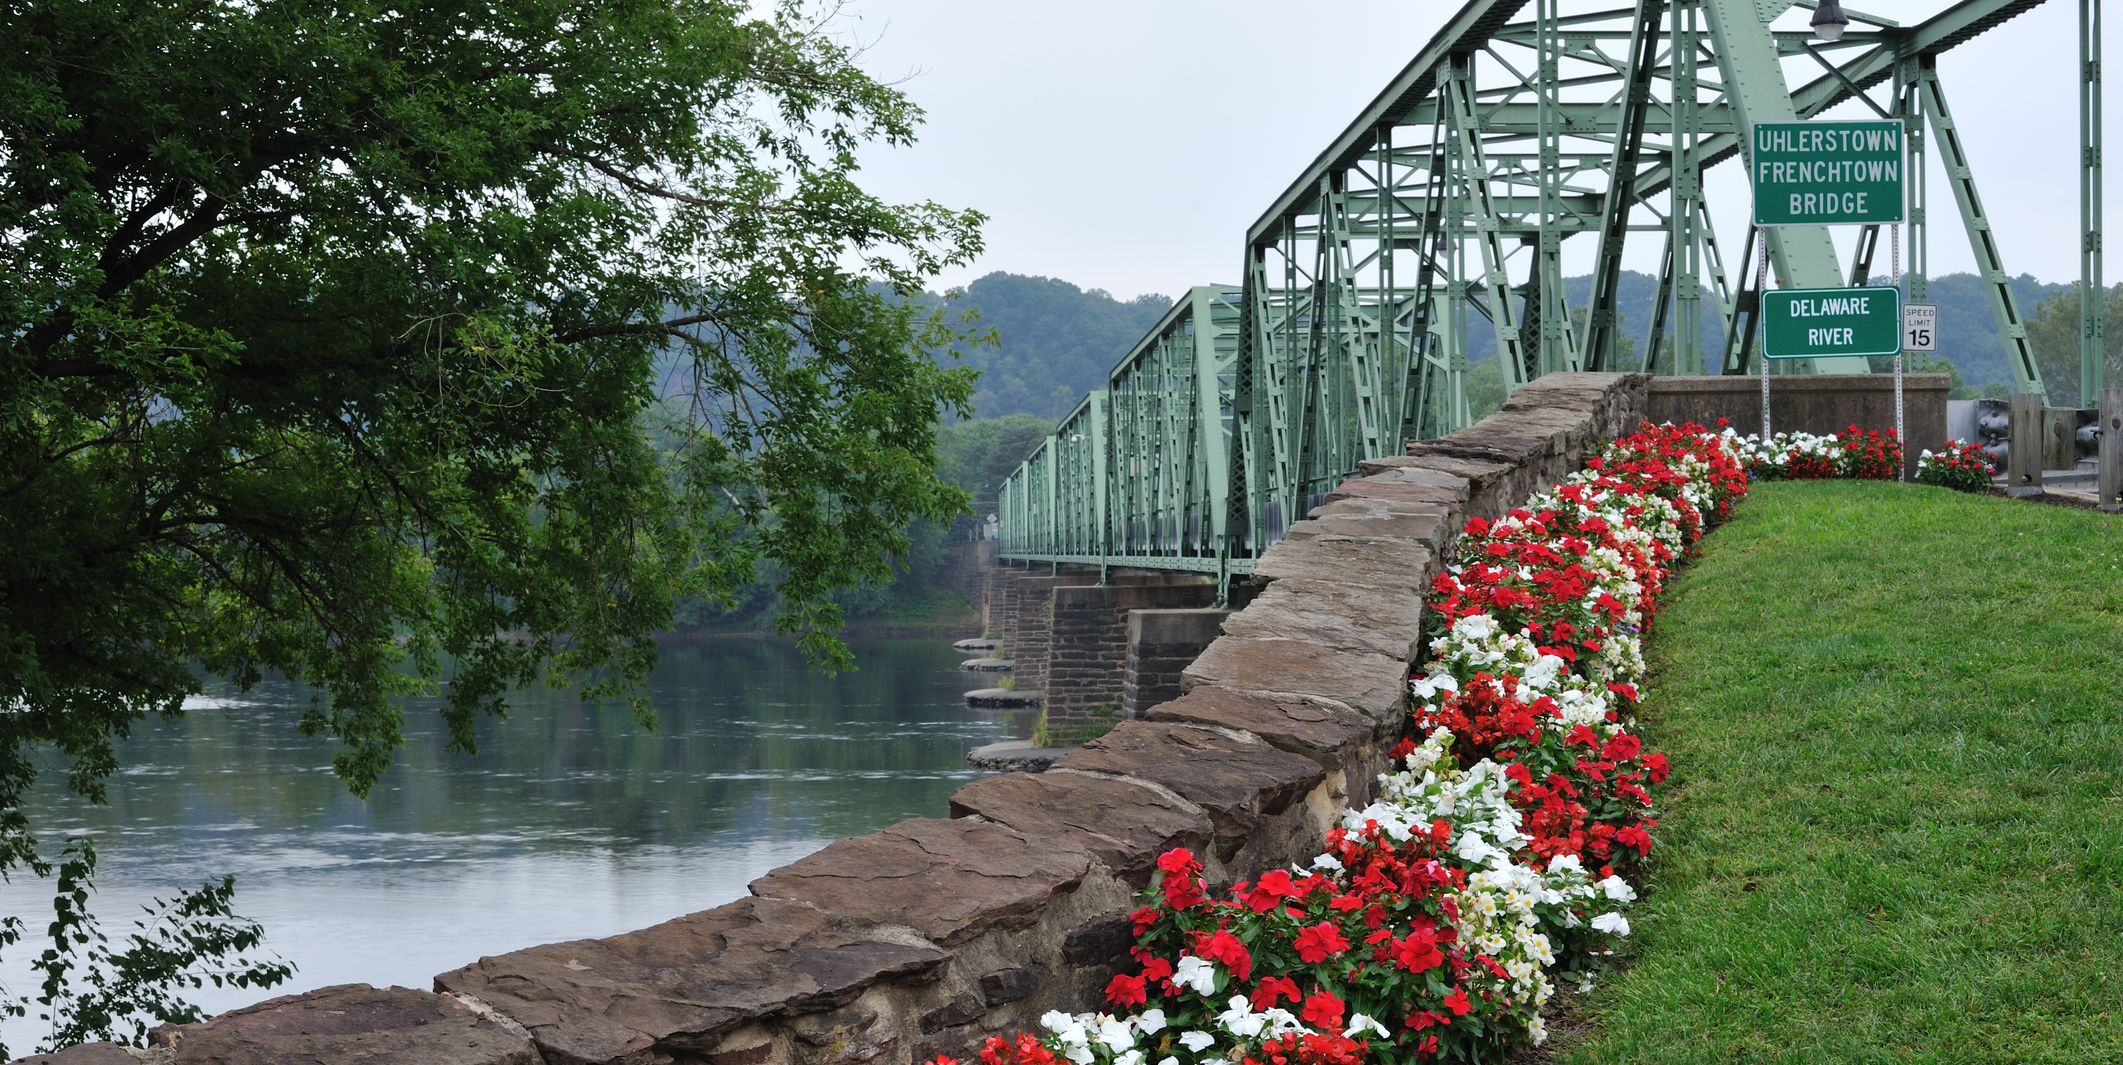 50+ Charming American Towns You Haven't Heard of But Should Visit ASAP